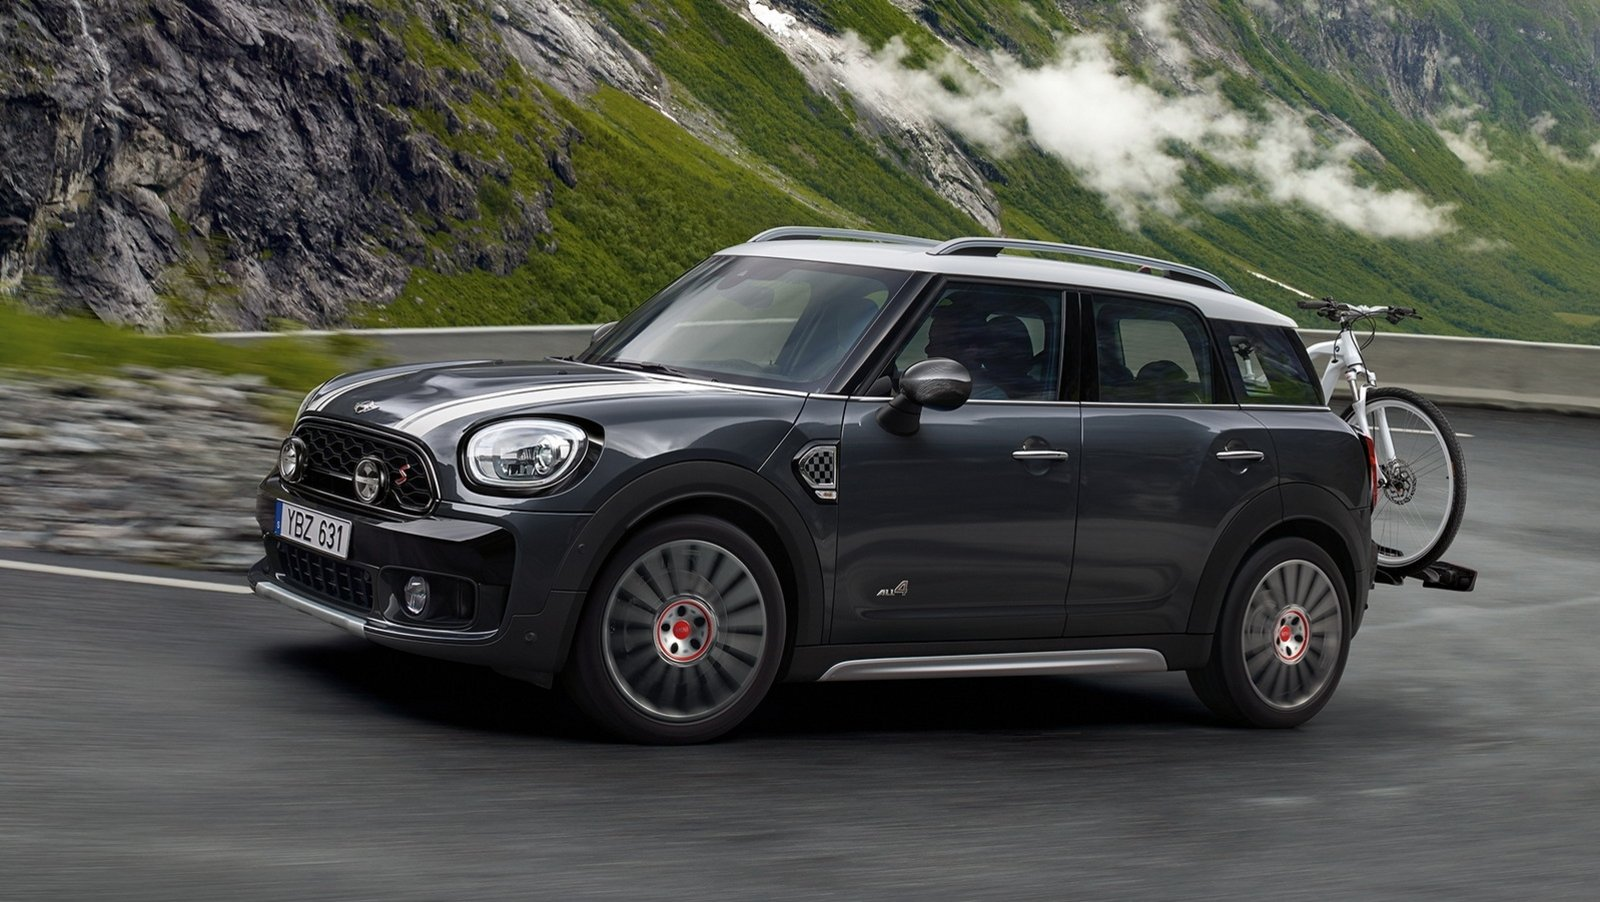 mini original accessories by john cooper works are a must have news top speed. Black Bedroom Furniture Sets. Home Design Ideas